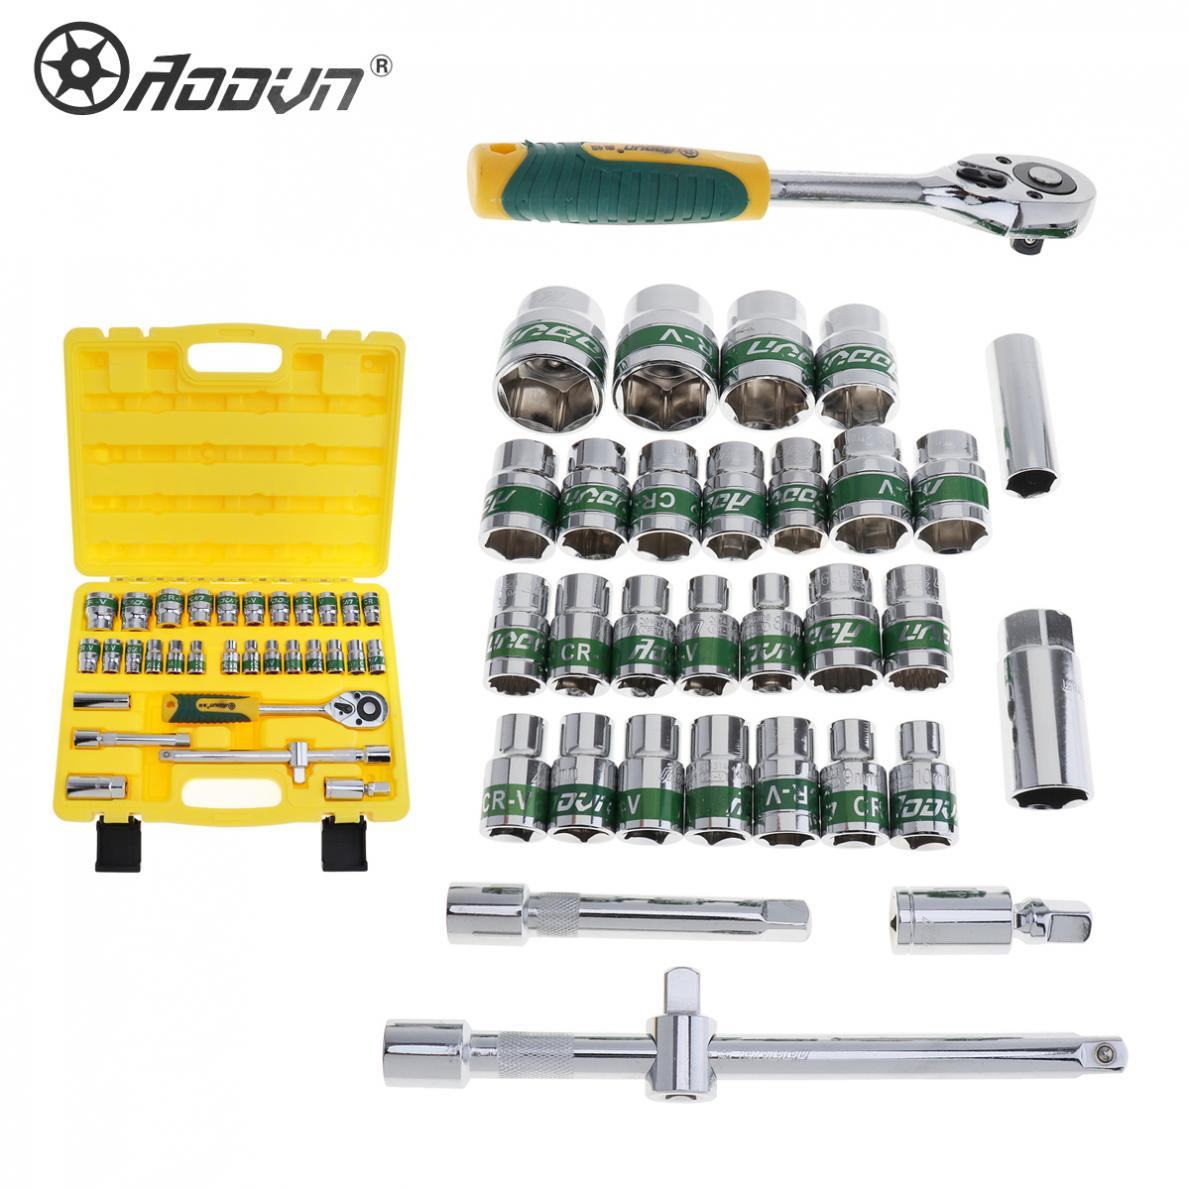 32pcs Automobile Motorcycle Car Repair Tool Box Precision Socket Wrench Set Ratchet Torque Wrench Combo Tool Kit hot combination socket set ratchet tool torque wrench to repair auto repair hand tools for car kit a set of keys yad2001